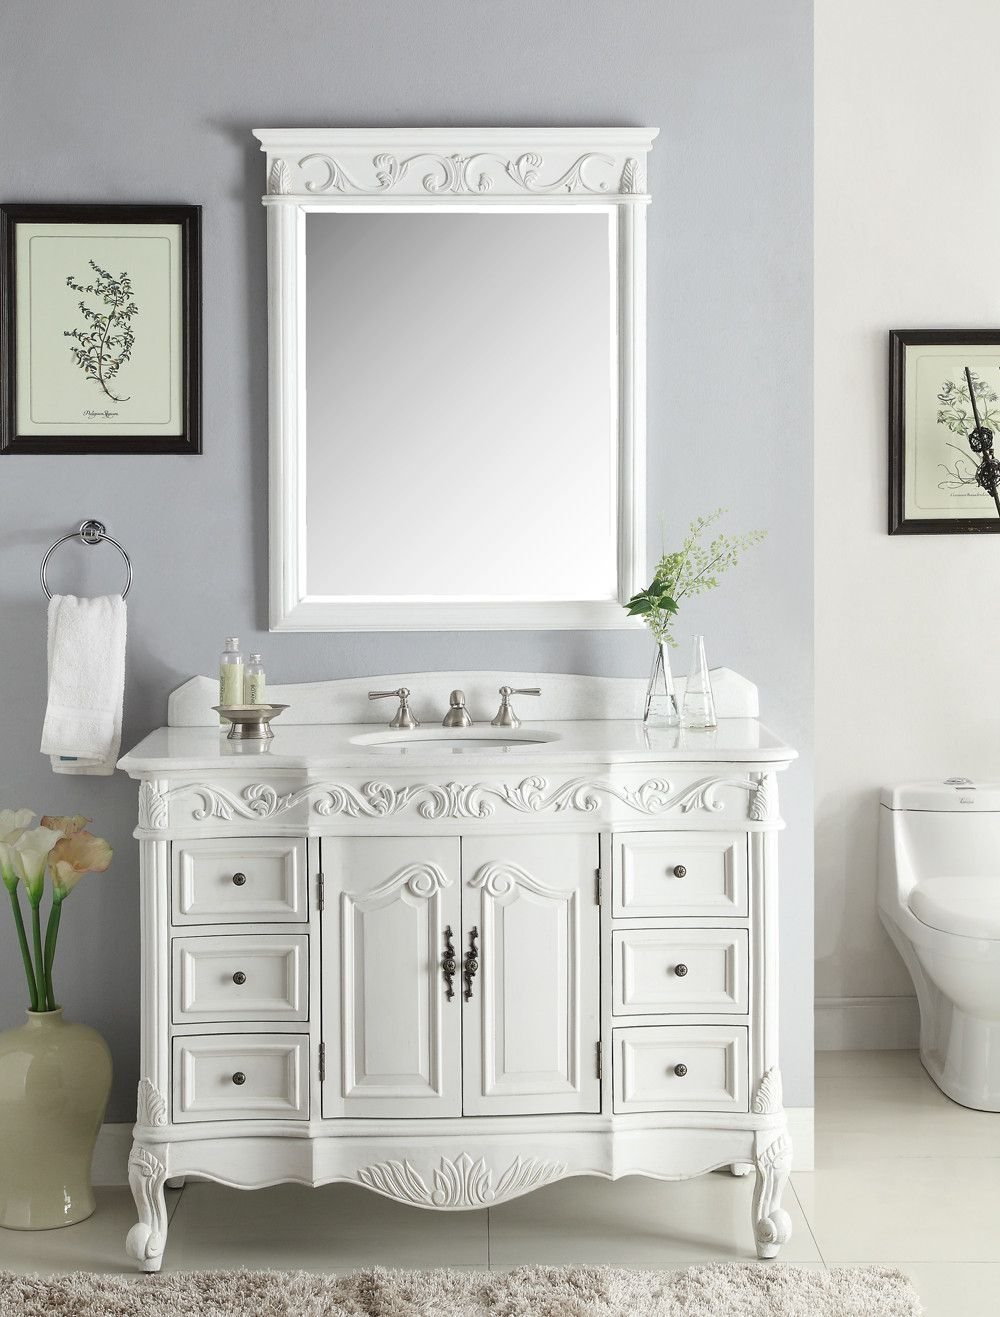 "Antique White Bathroom Cabinets 48"" beckham bathroom sink vanity & mirror set, antique white sw"